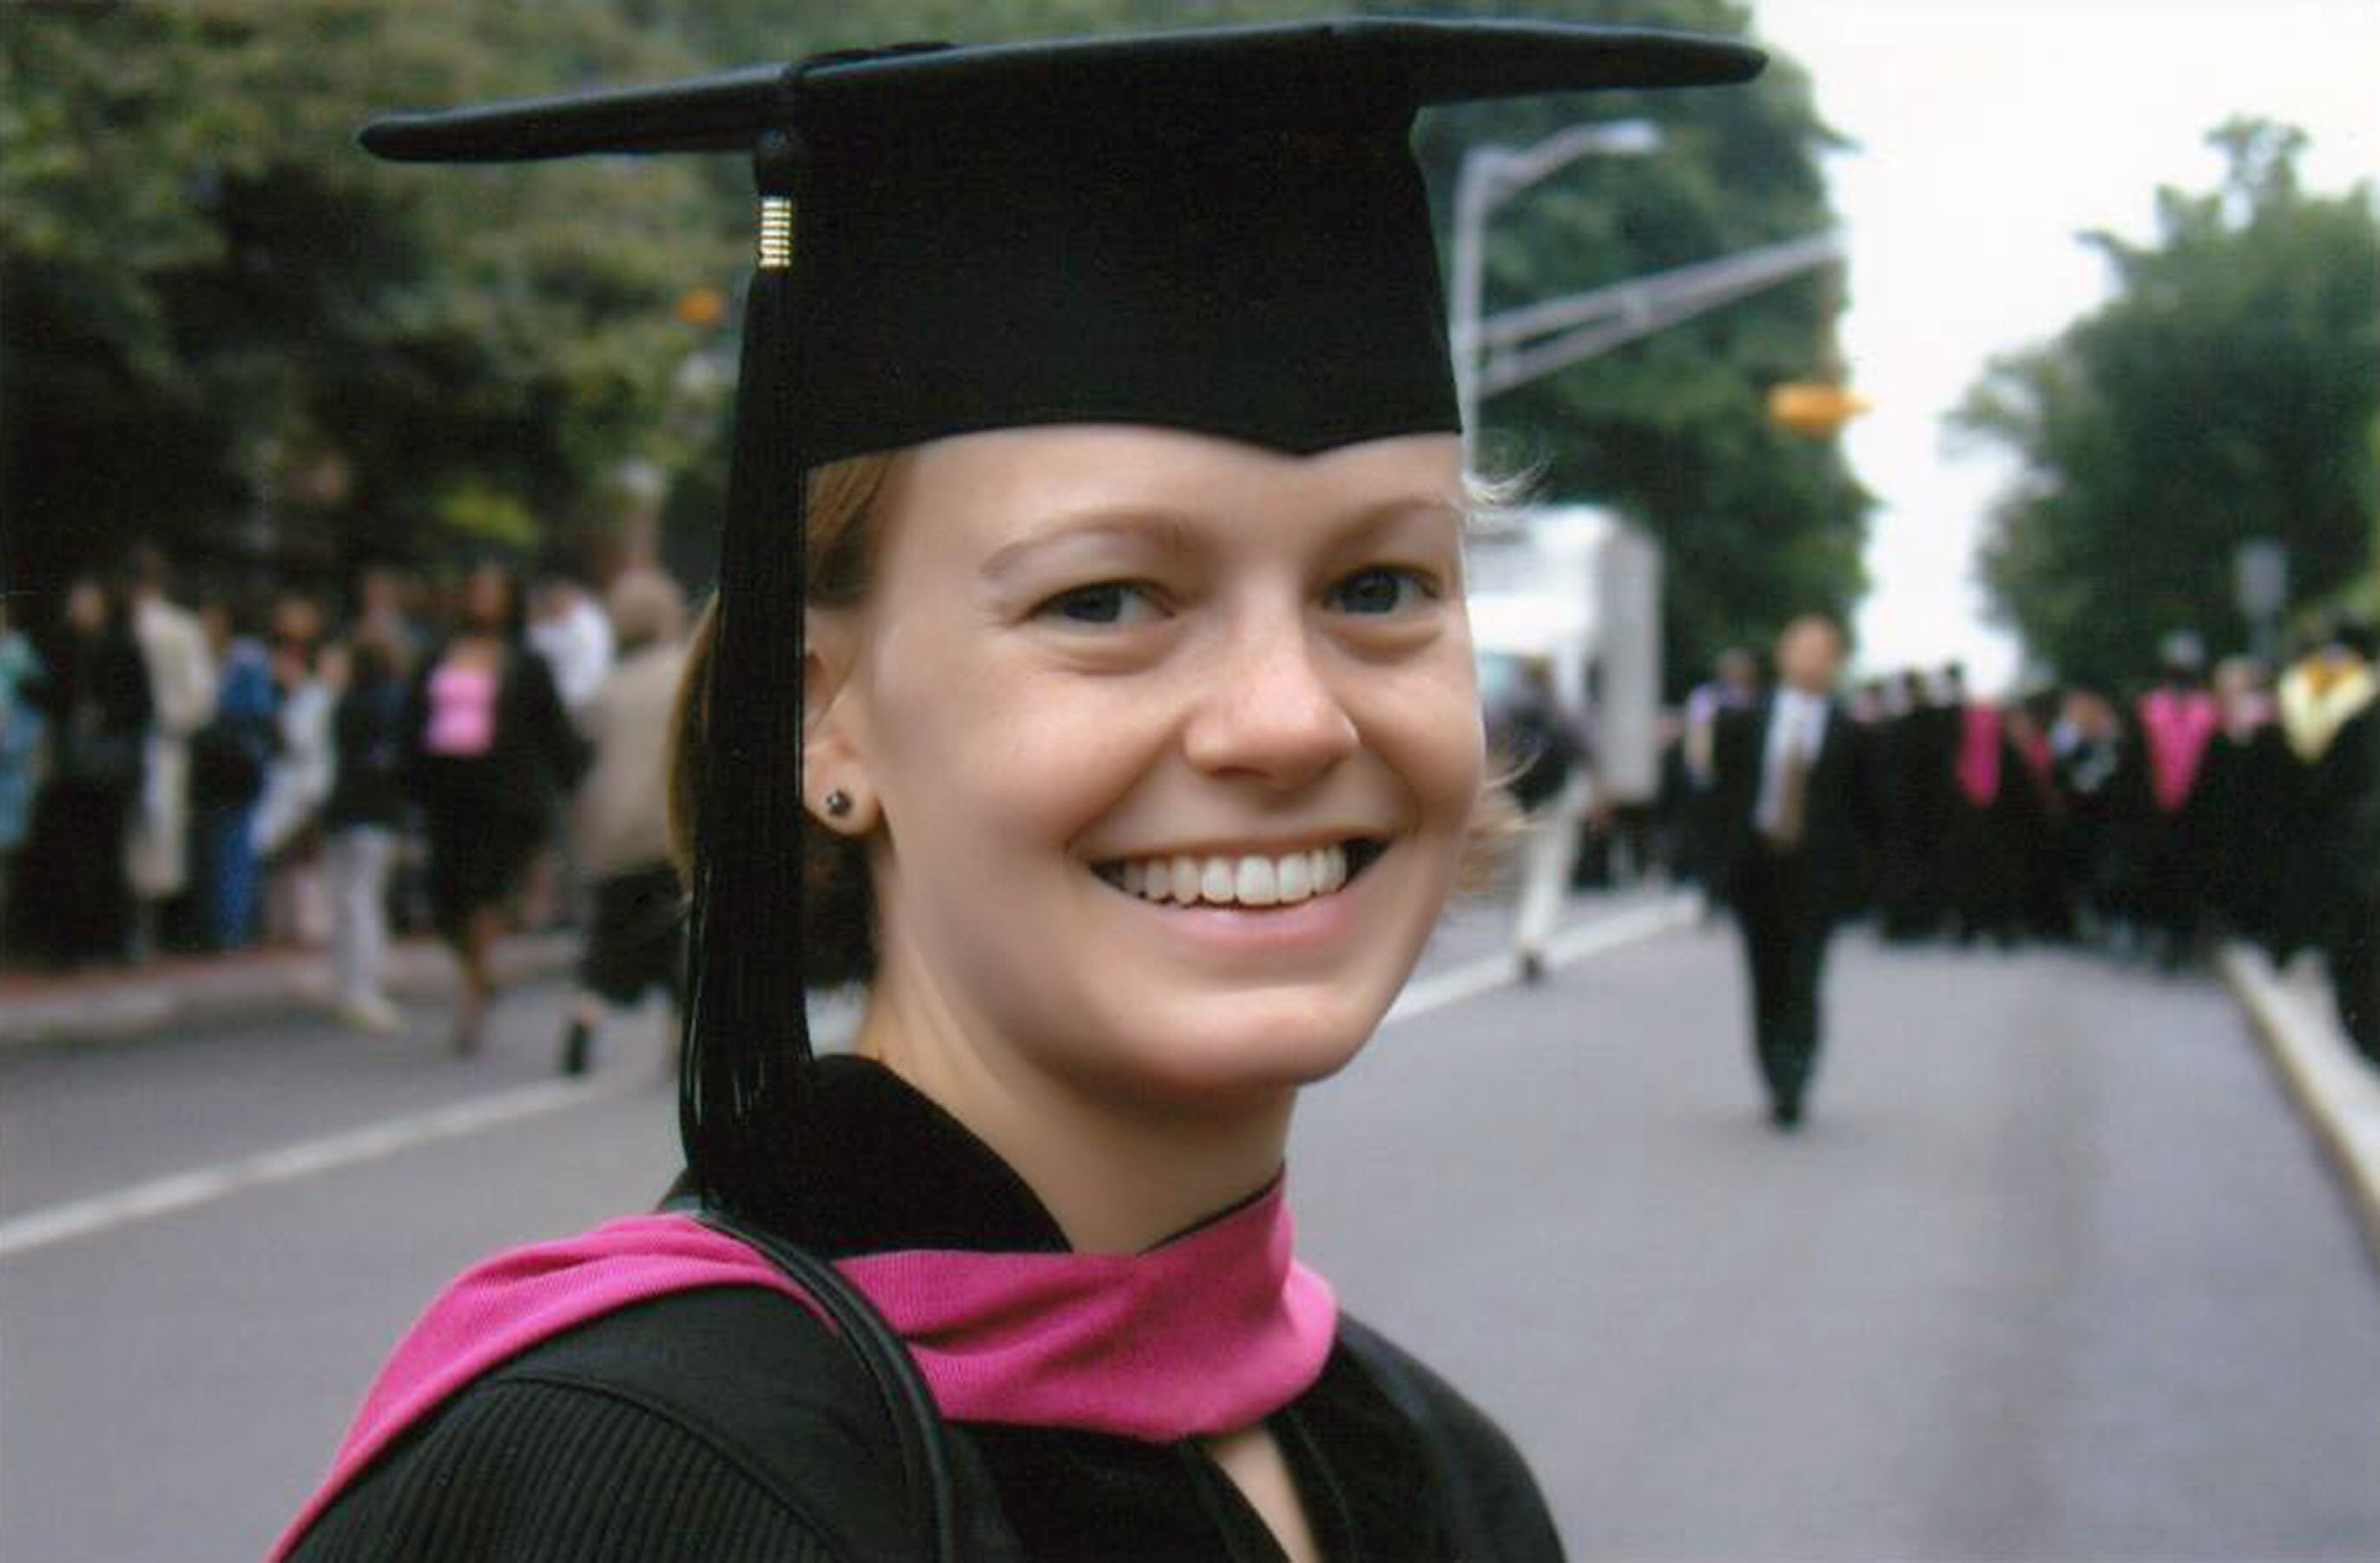 After graduating from medical school at Harvard, Stulberg wanted to come back to Chicago where she grew up. It was after she found the process of getting abortion training difficult that she founded Midwest Access Project. (Courtesy of Debra Stulberg)